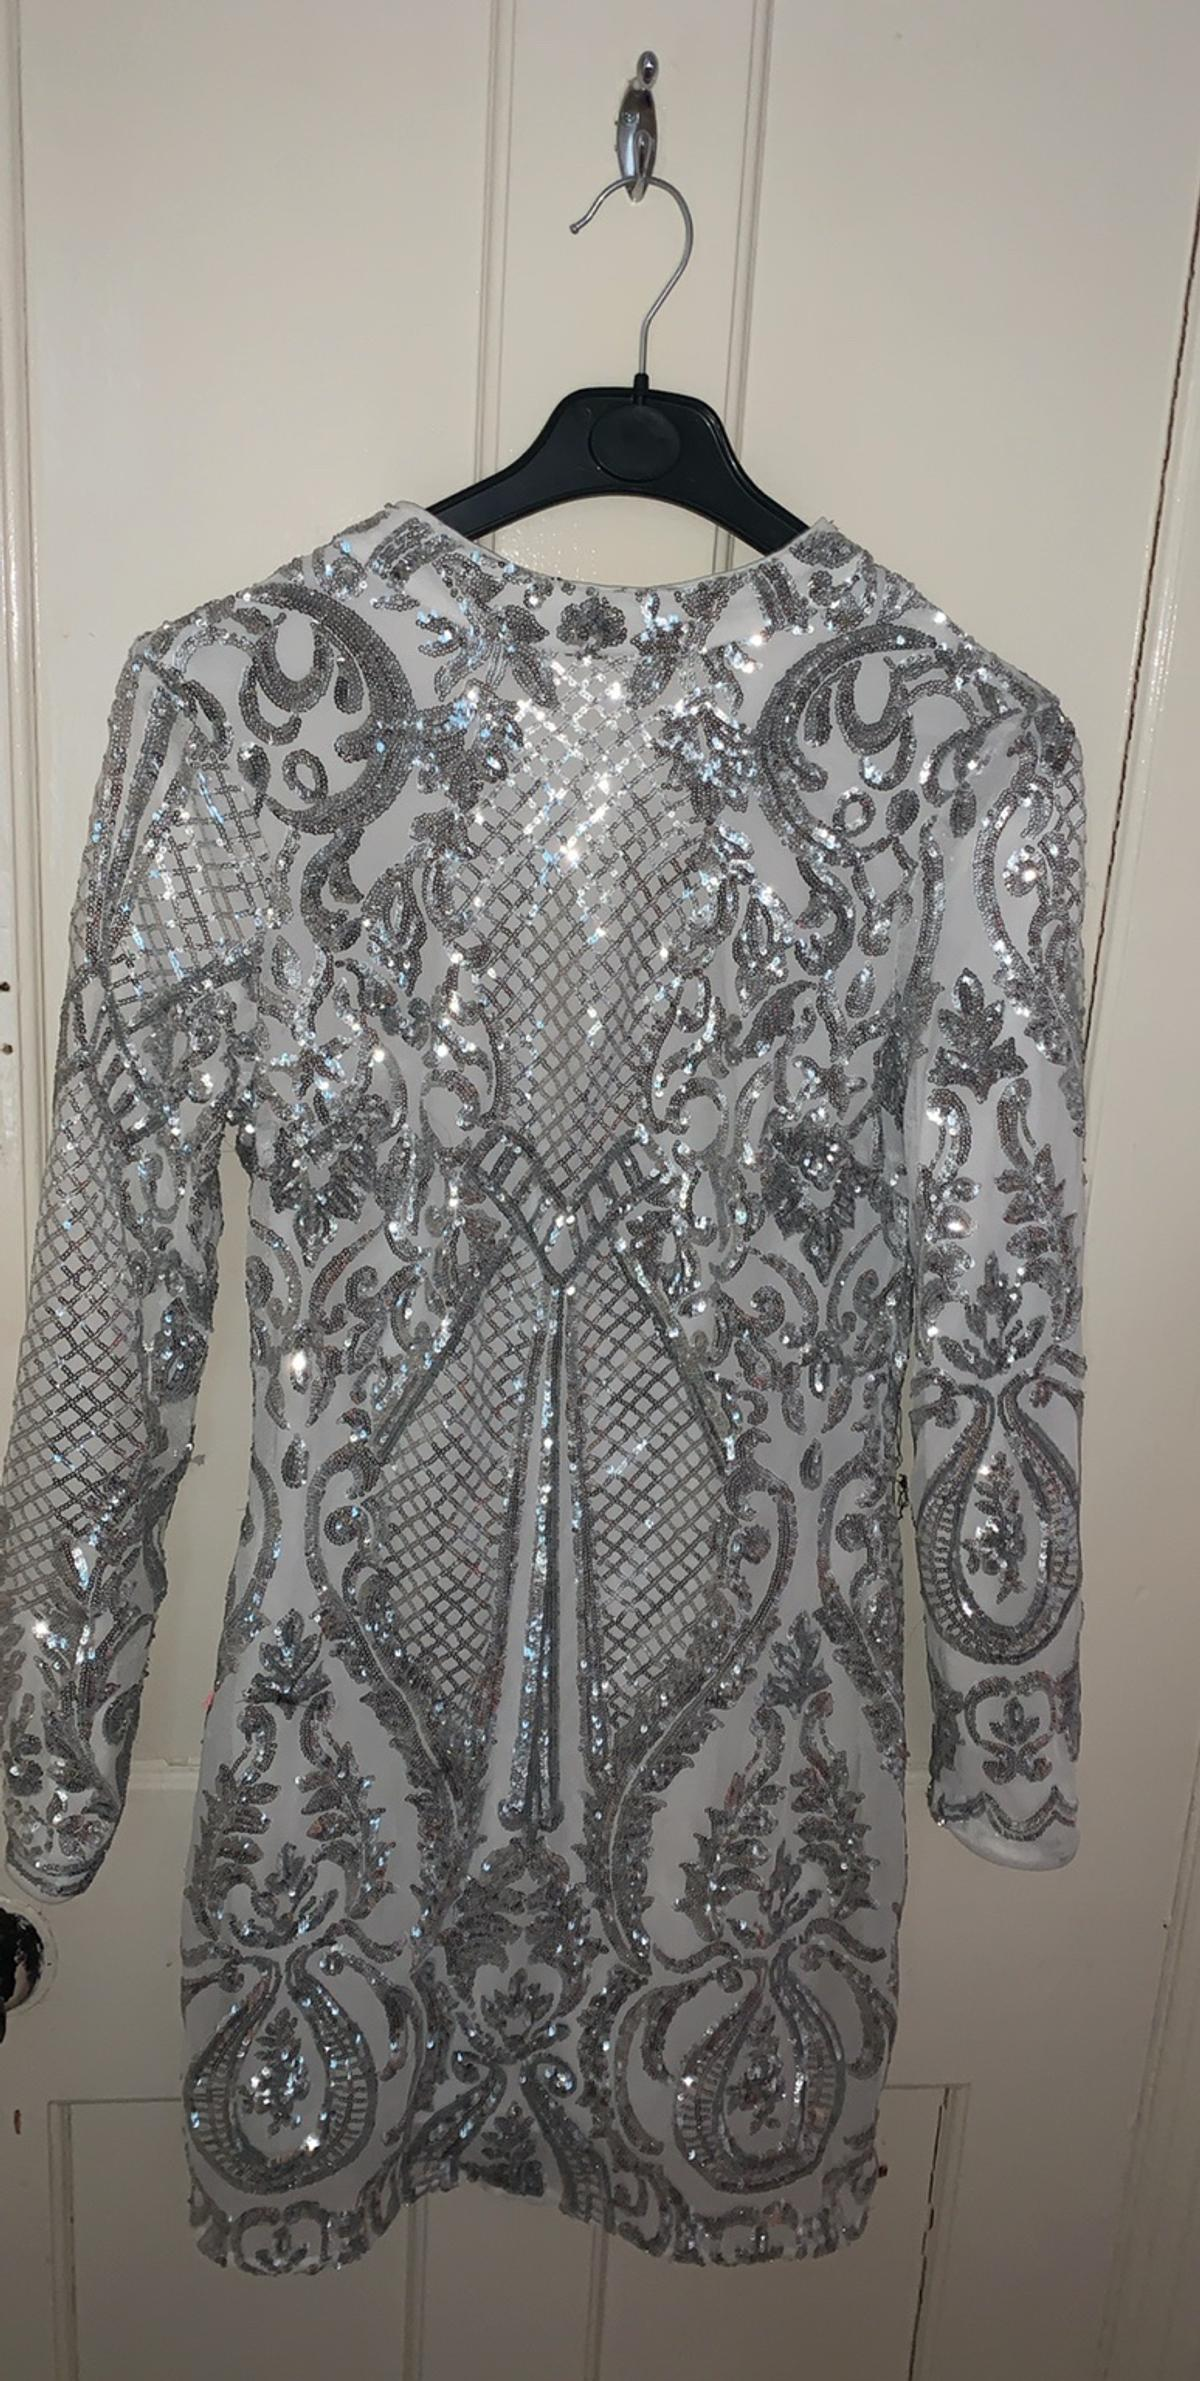 Dress no used brand new jist dont have the price tag on it